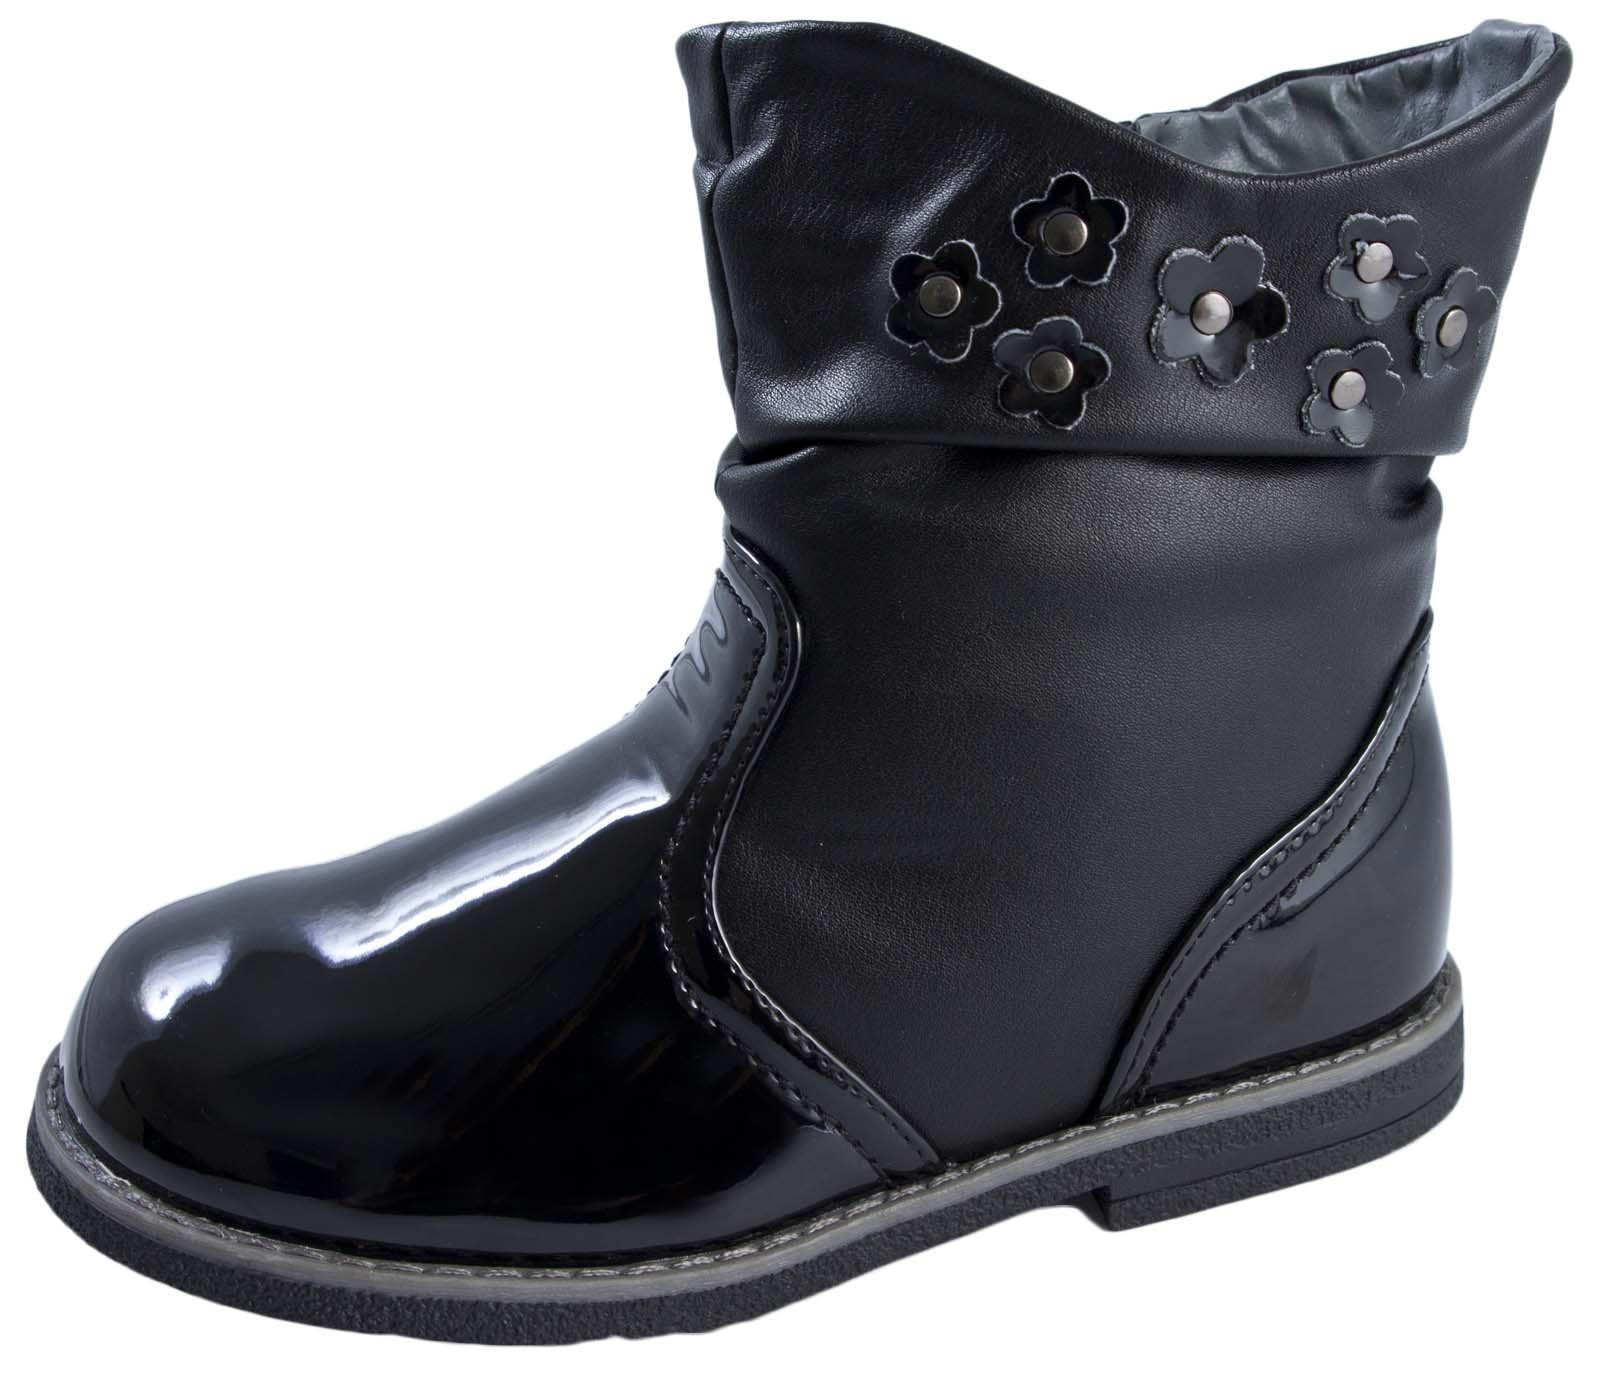 faux leather boots warm winter fleece lined slouch